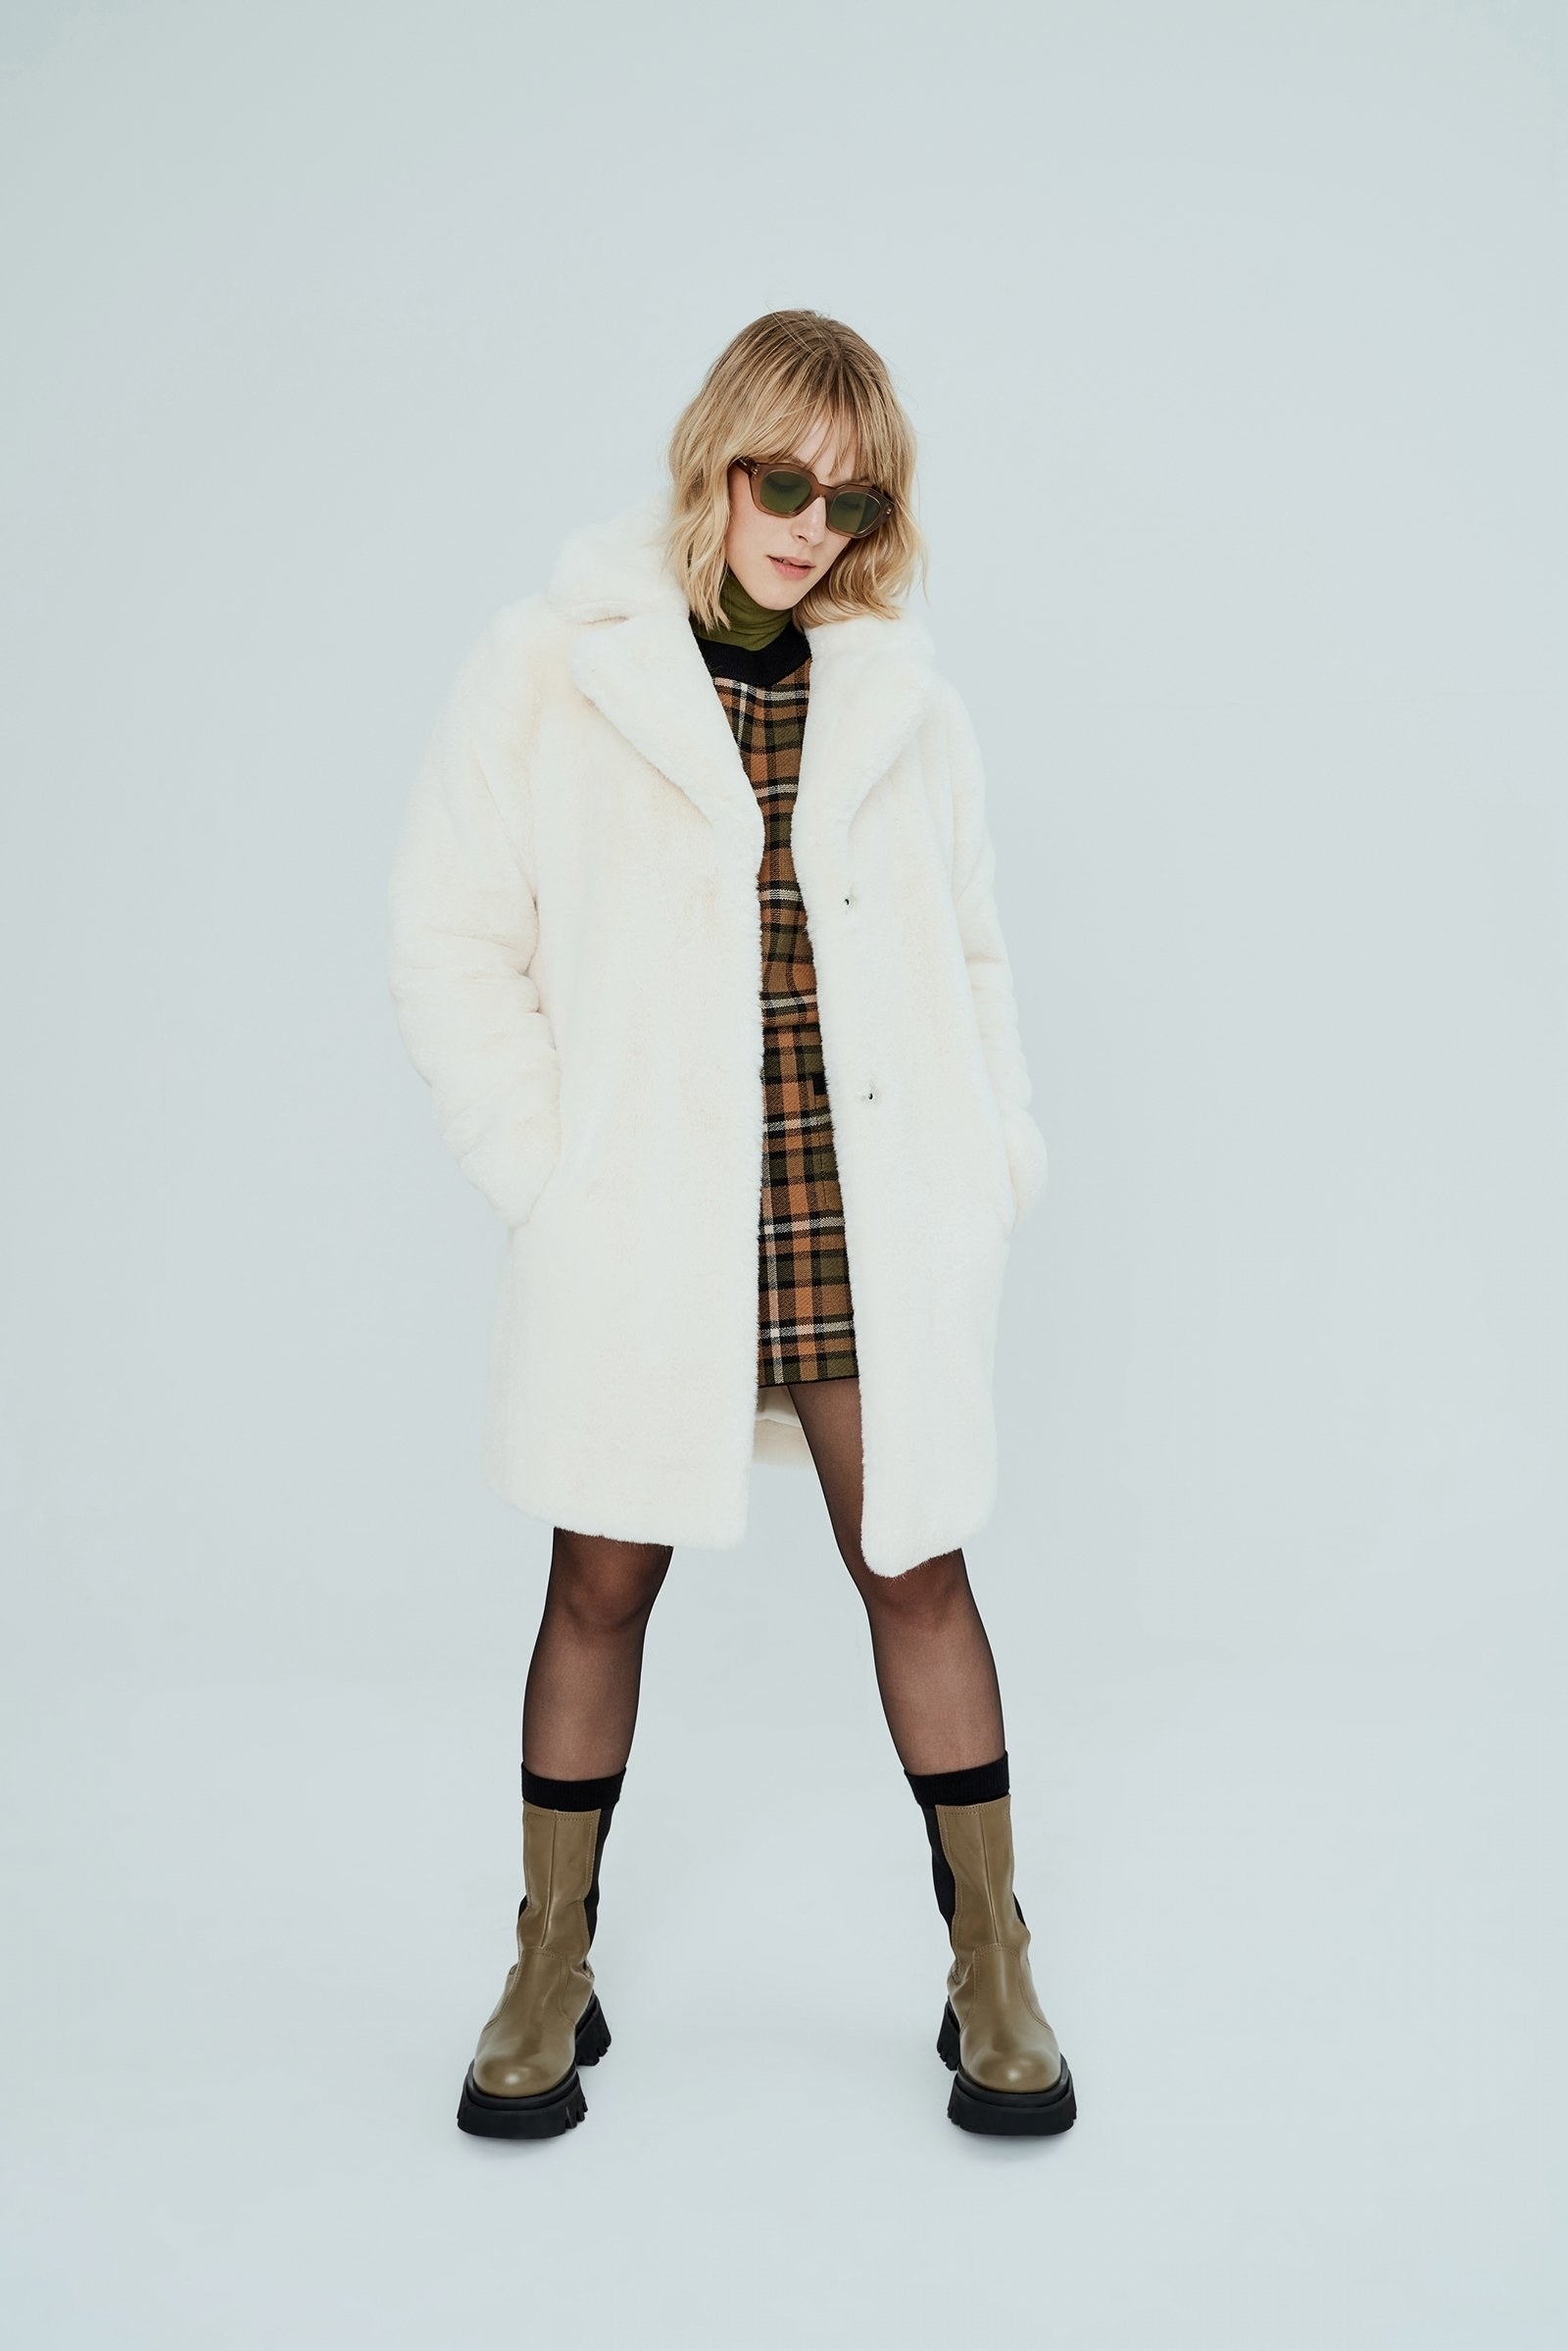 A model in the coat in ivory